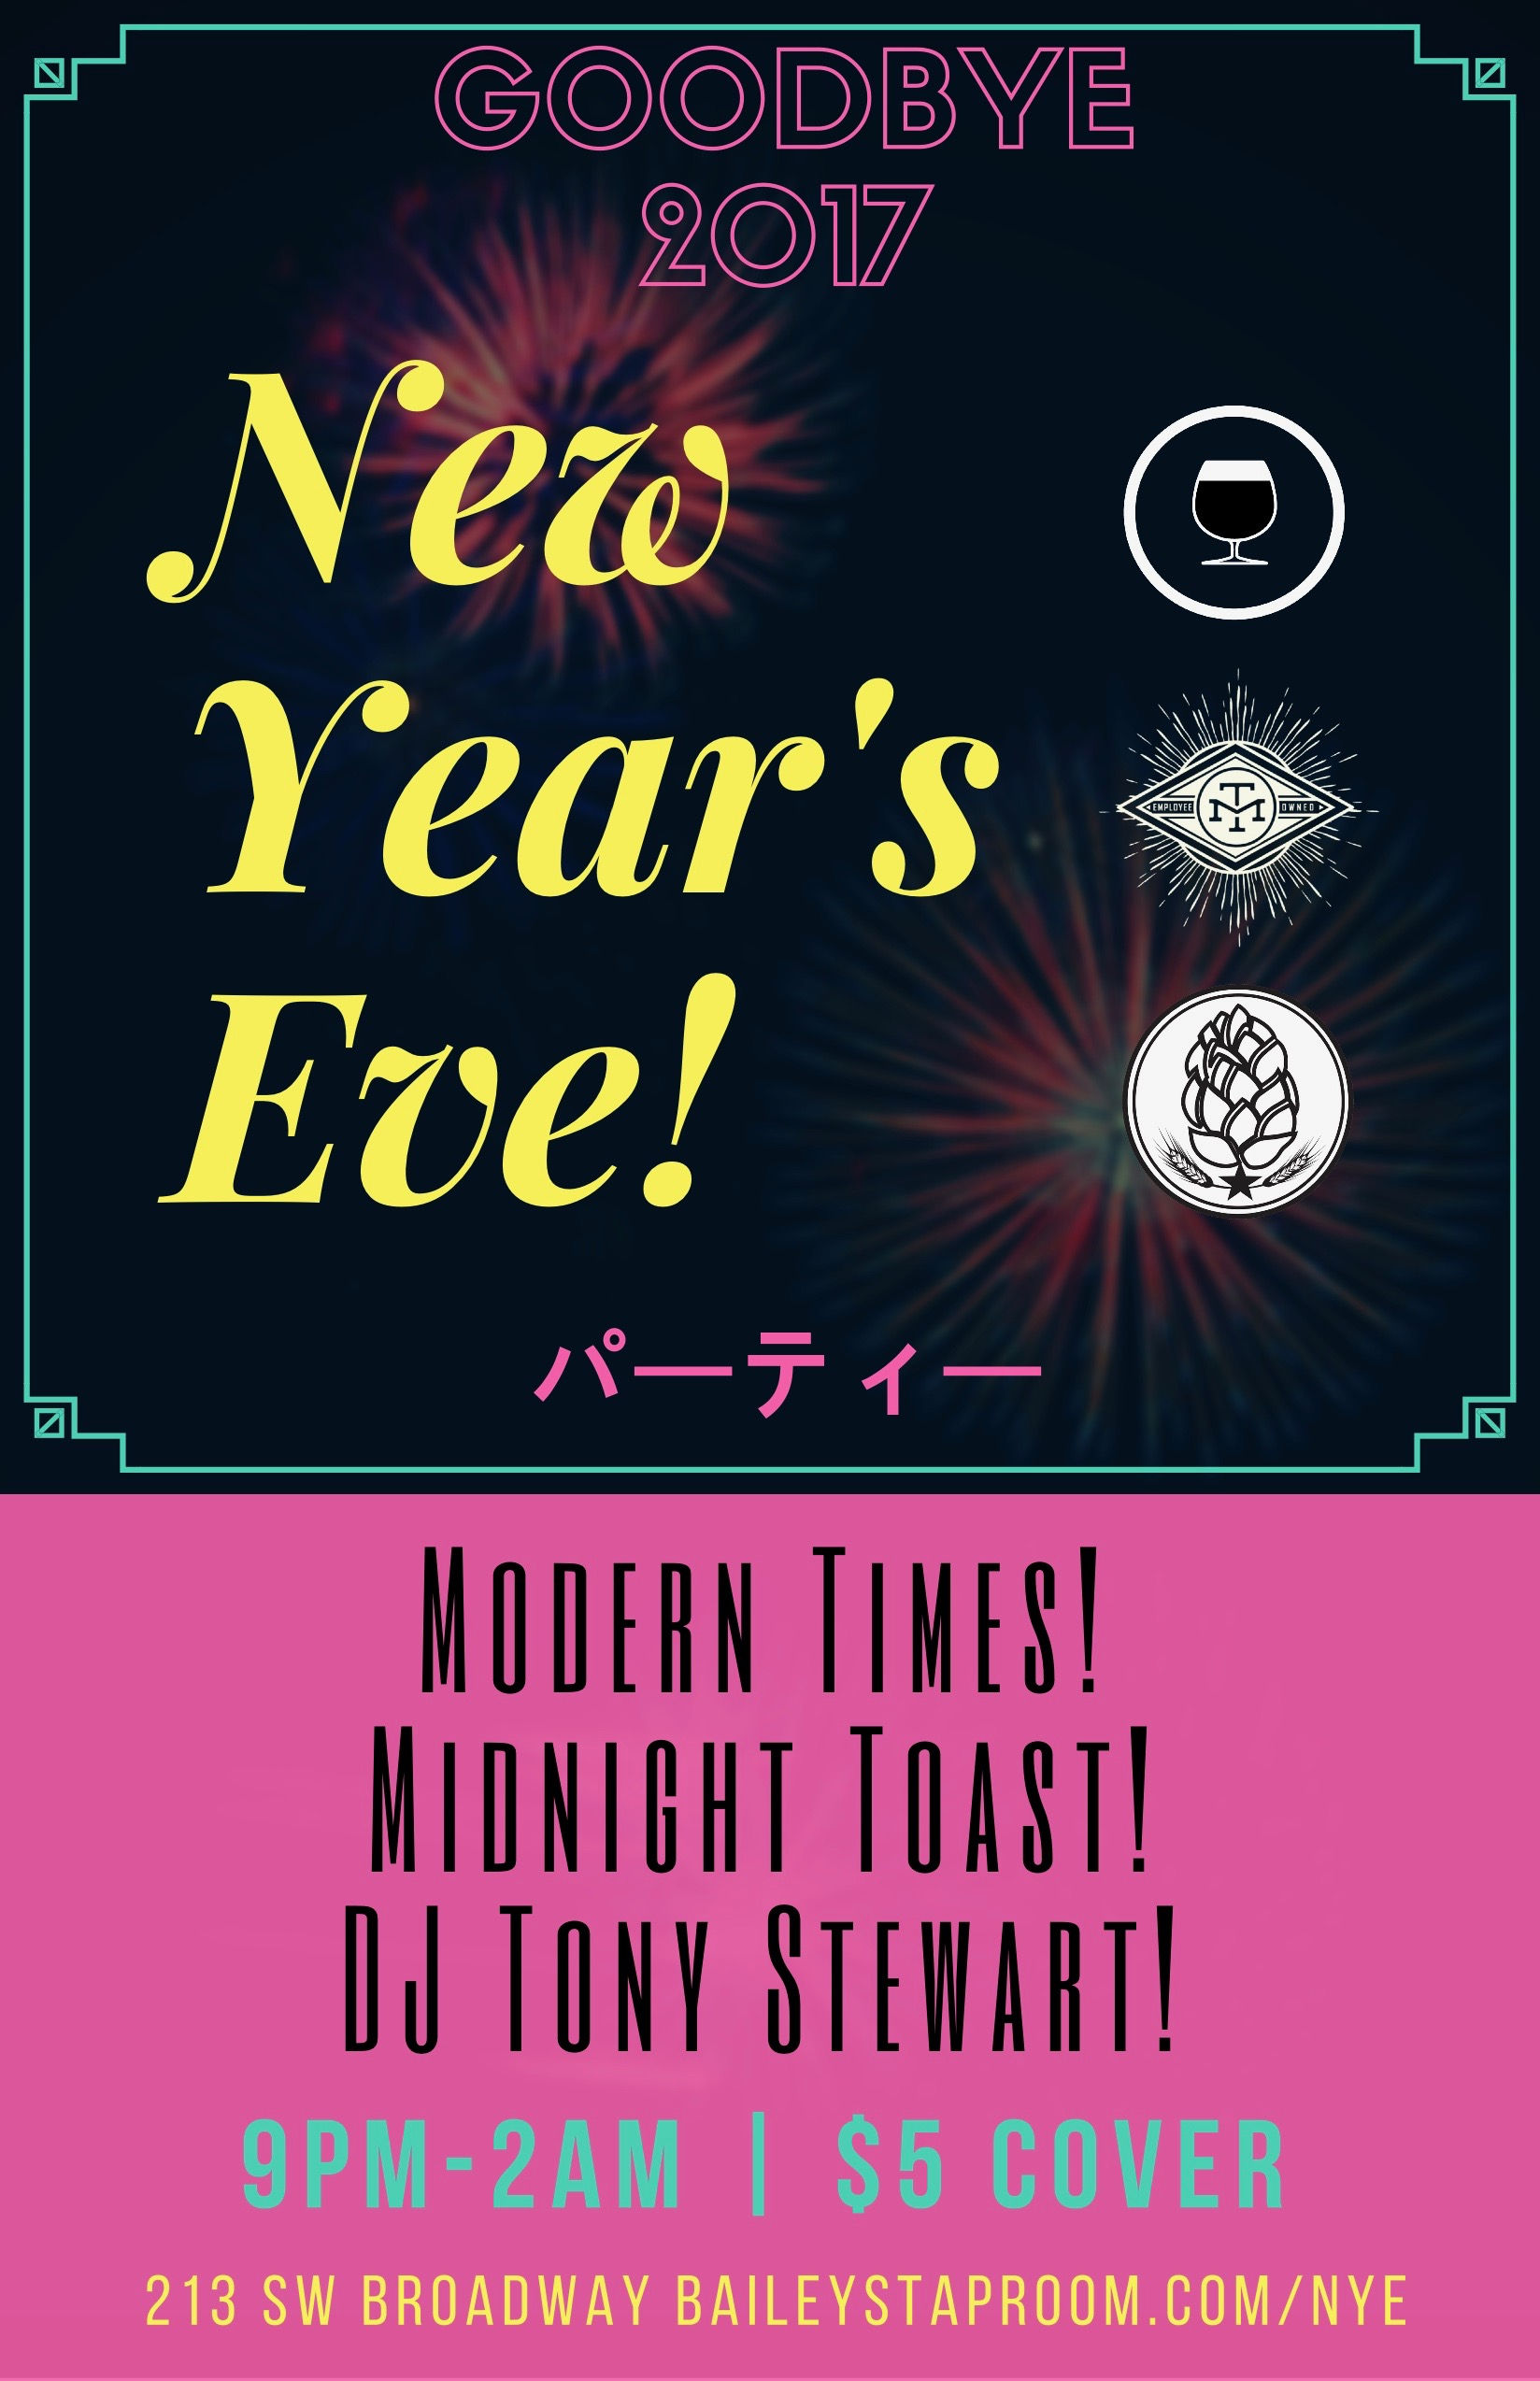 Modern Calendar And The Sun Aztec Calendar Sun Stone Crystalinks Welcome In 2018 At Baileys Taproom New Years Eve With